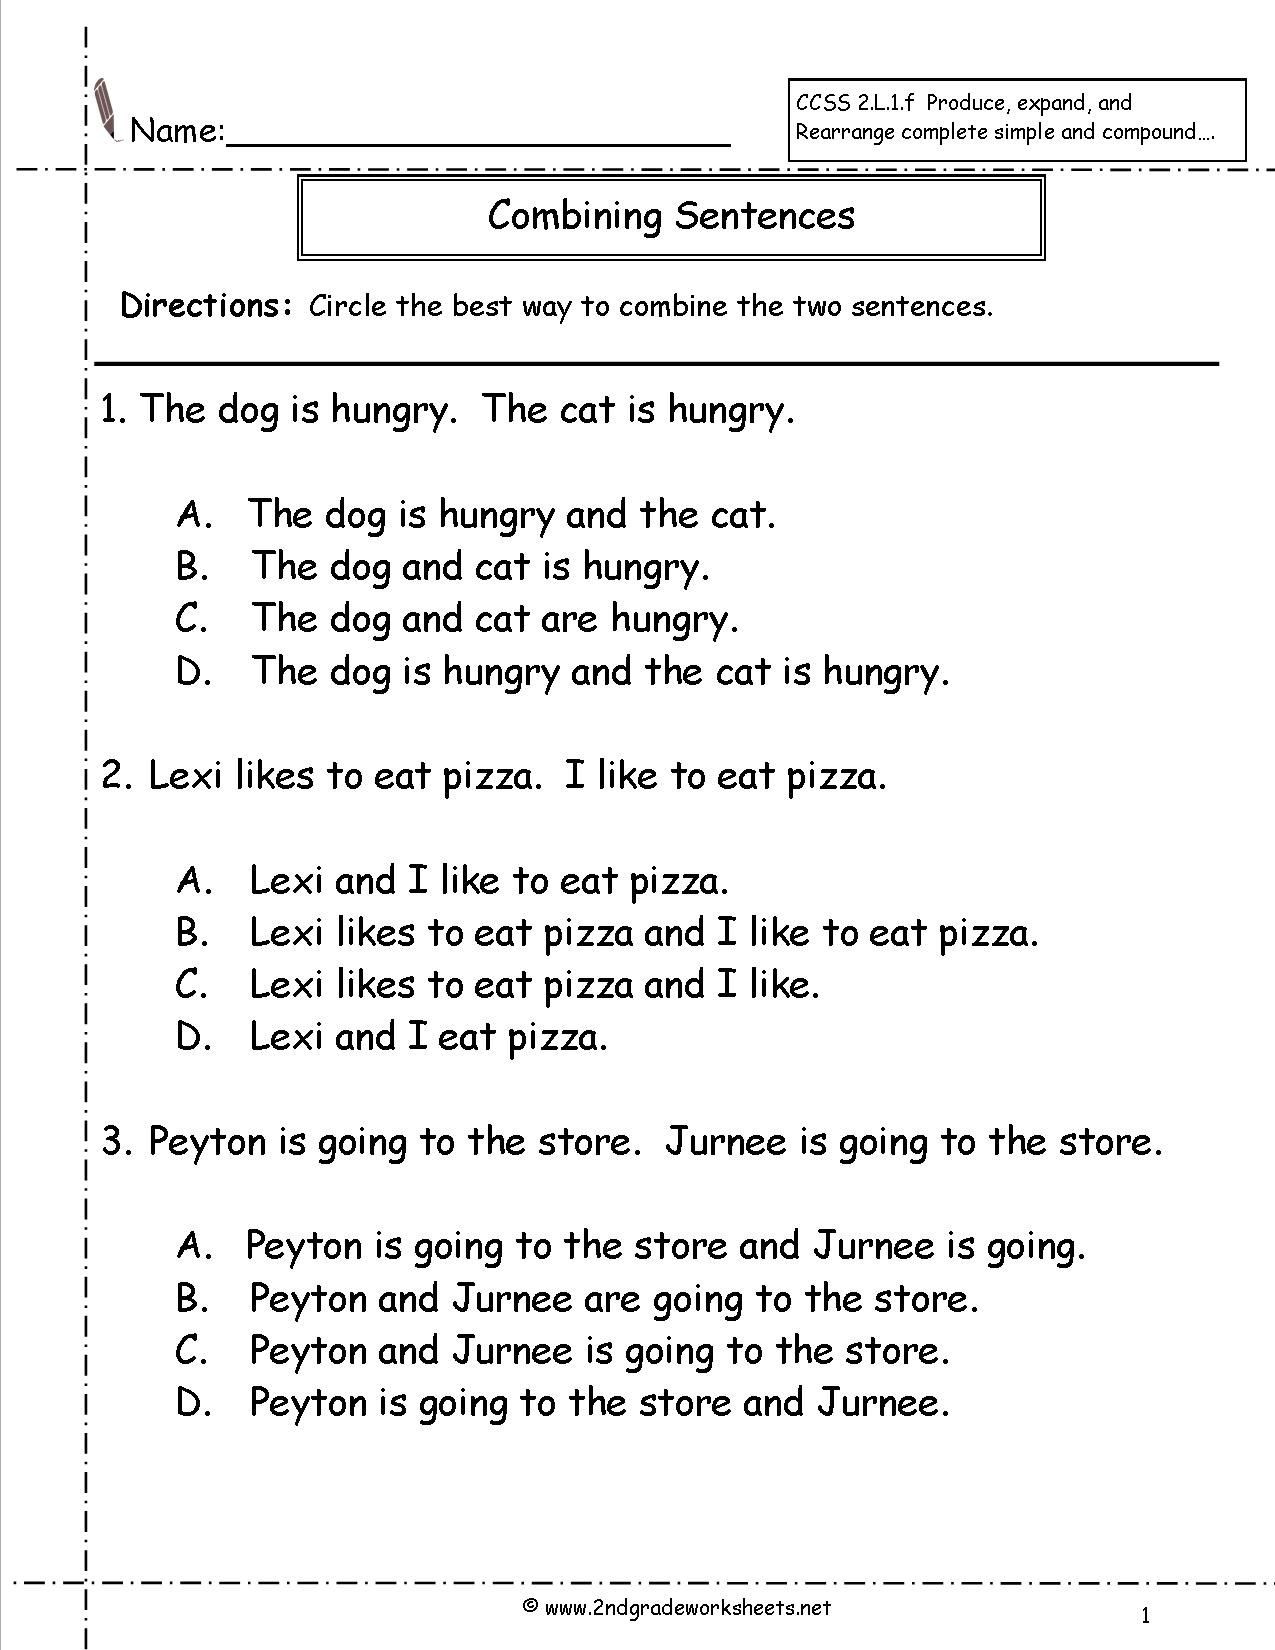 Complex Sentences Worksheet 5th Grade Bining Sentences Worksheet